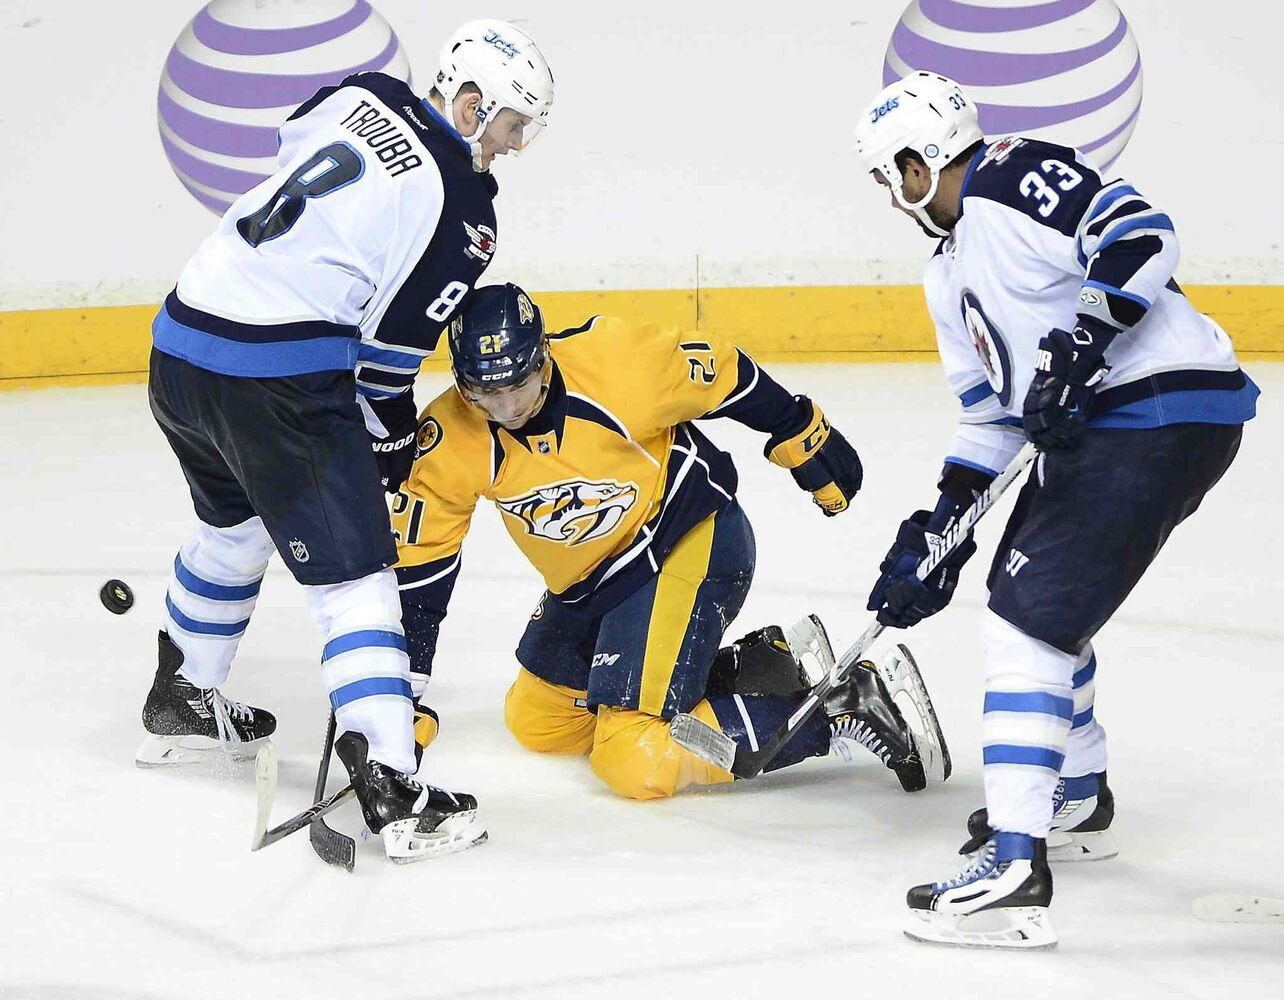 Winnipeg Jets' defenseman Jacob Trouba (8) and Dustin Byfuglien (33) knock the puck away from Nashville Predators' forward Simon Moser (21) in the third period. (Mark Zaleski / The Associated Press)